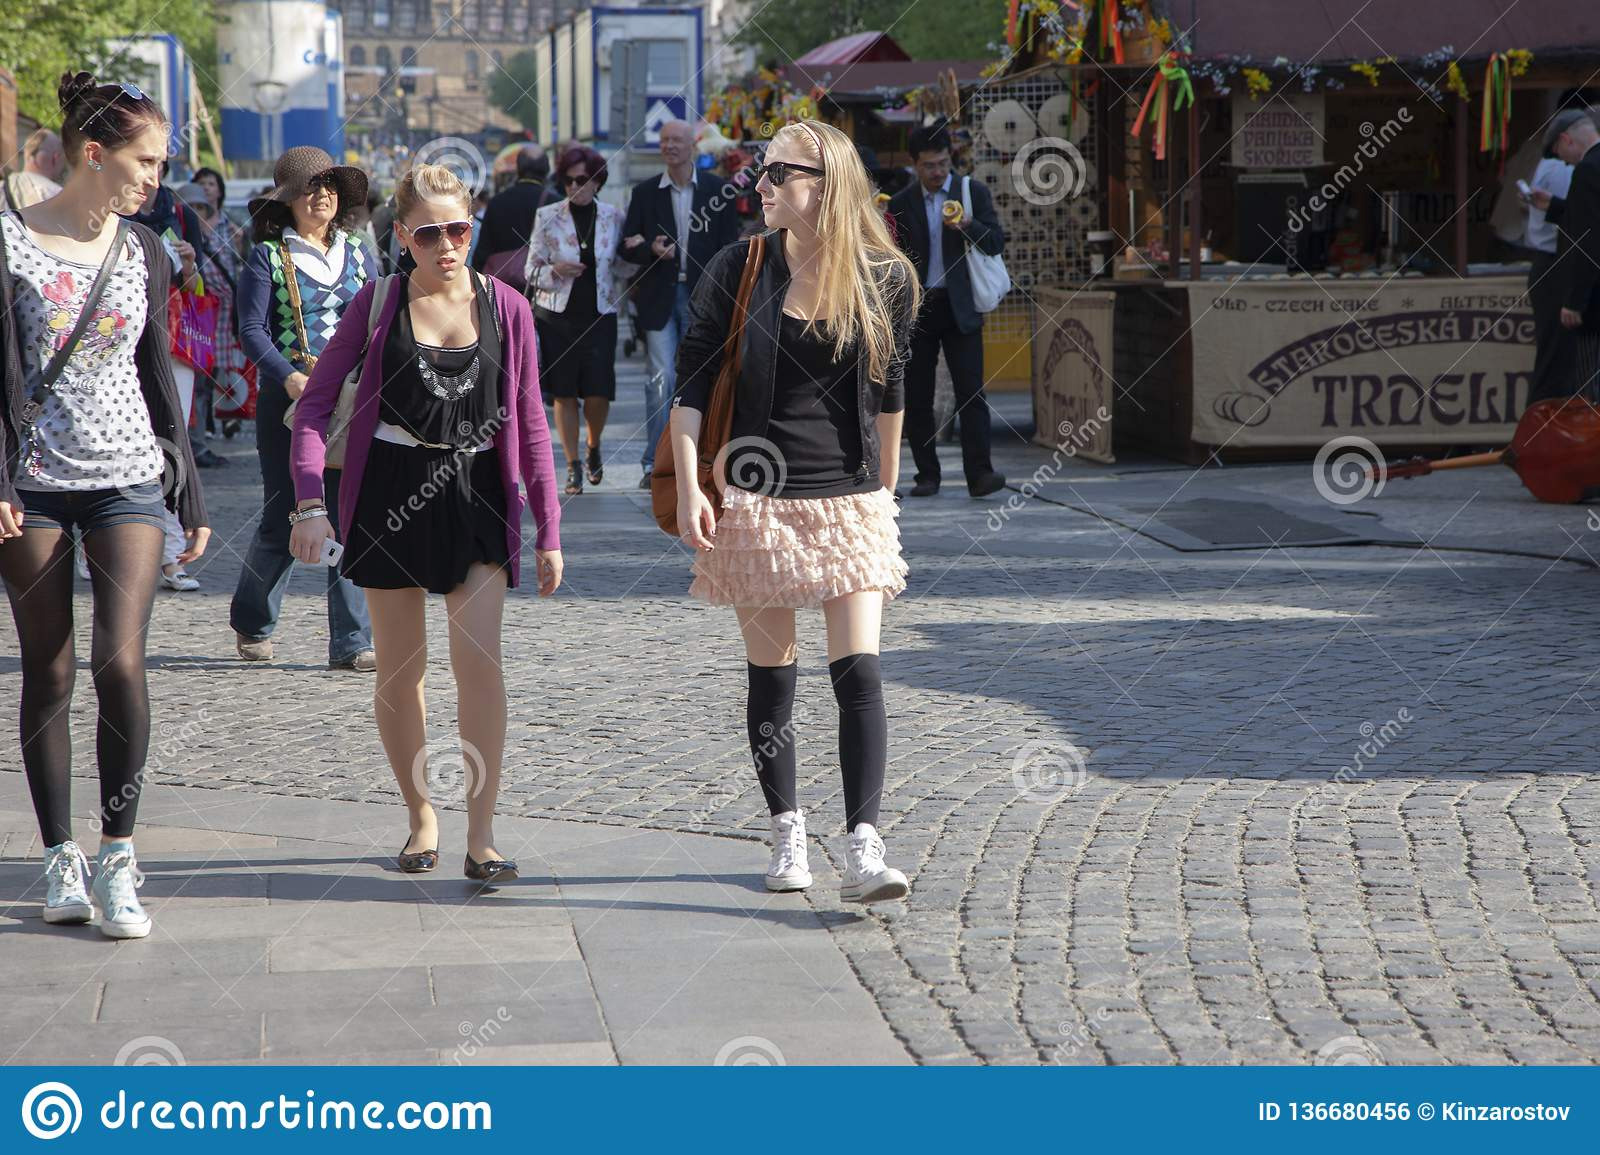 Prague, Czech Republic - April 20, 2011: Three young stylish women are smiling and walking down the street